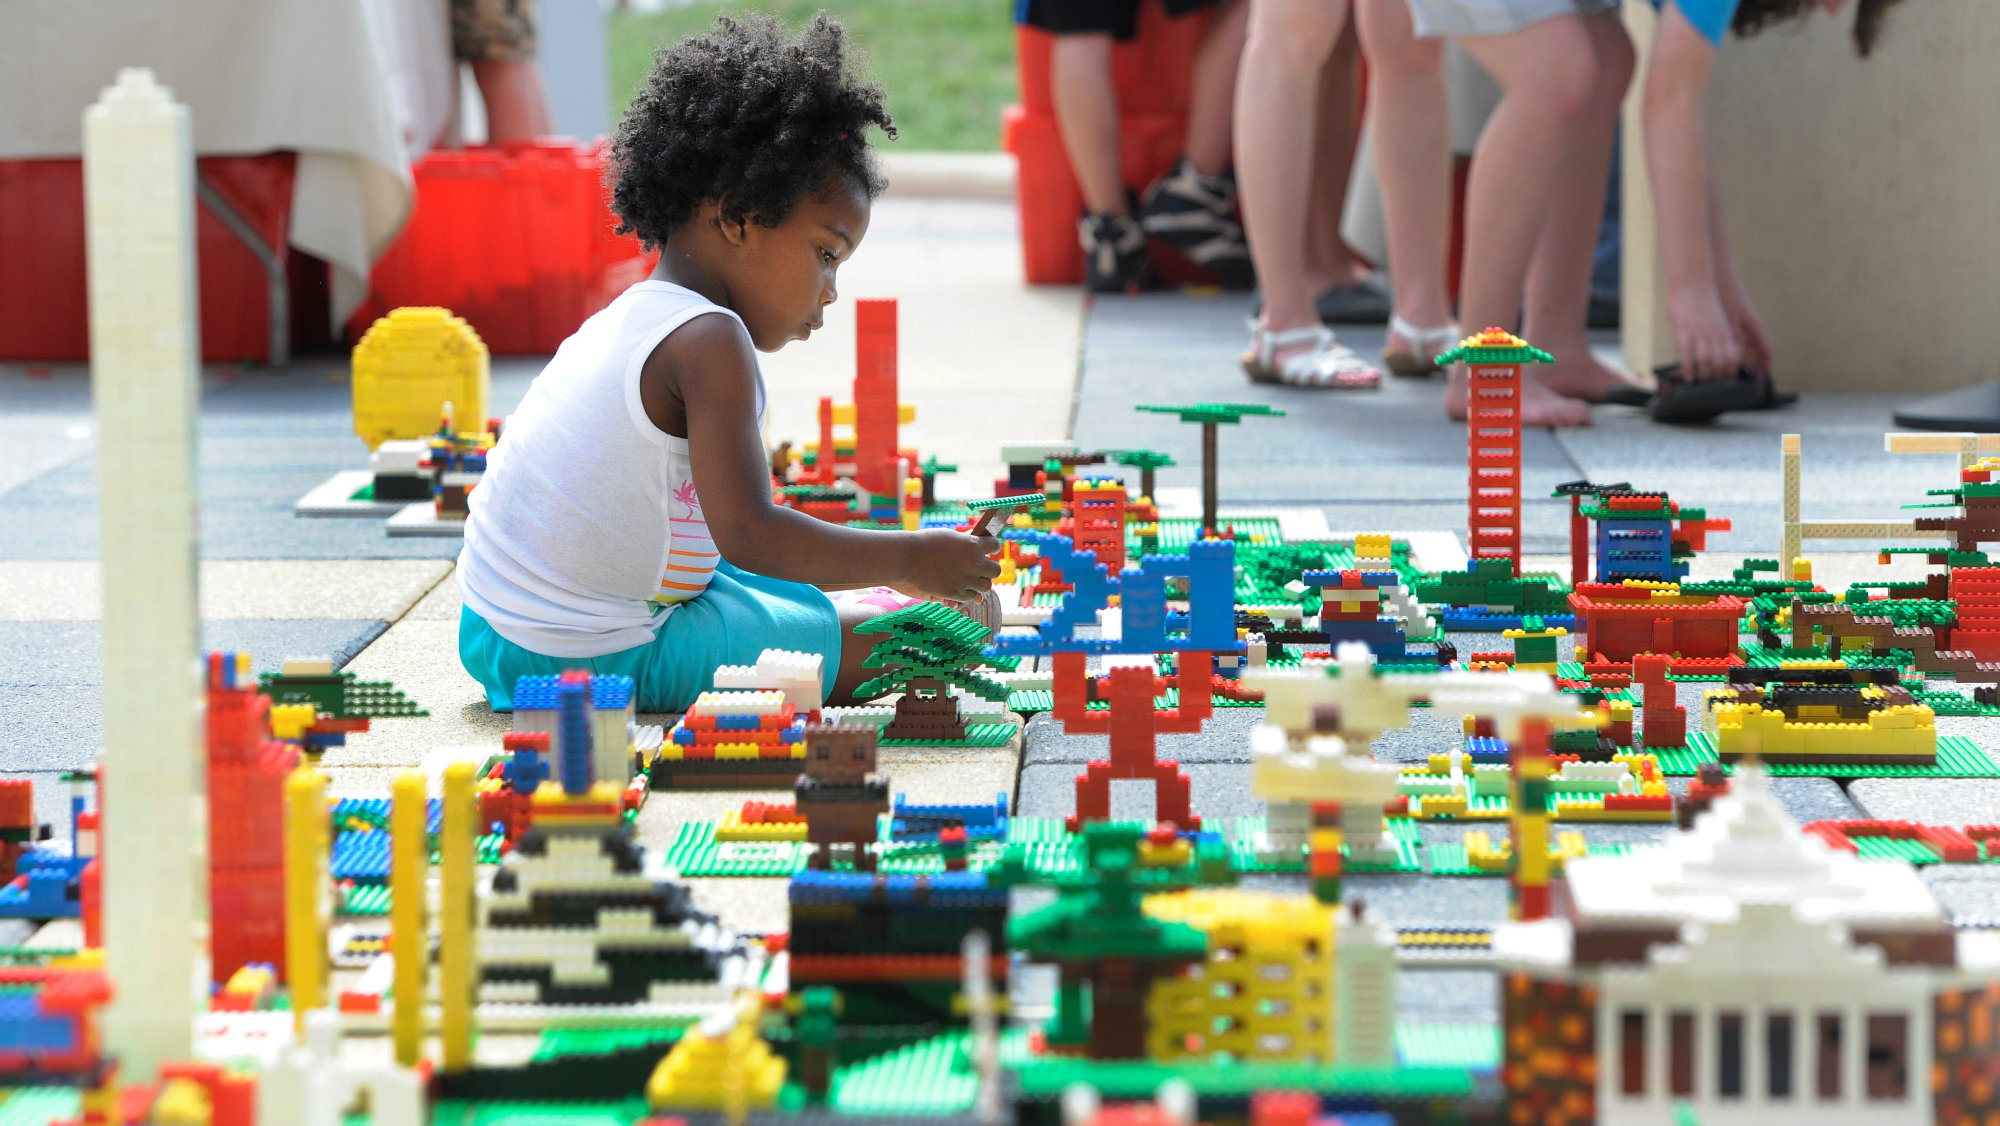 LEGO Maker Glo Banks, of Washington, helps build a 30-by-50-foot map of the United States at the National Maker Faire at the University of the District of Columbia in Washington Saturday, June 13, 2015.